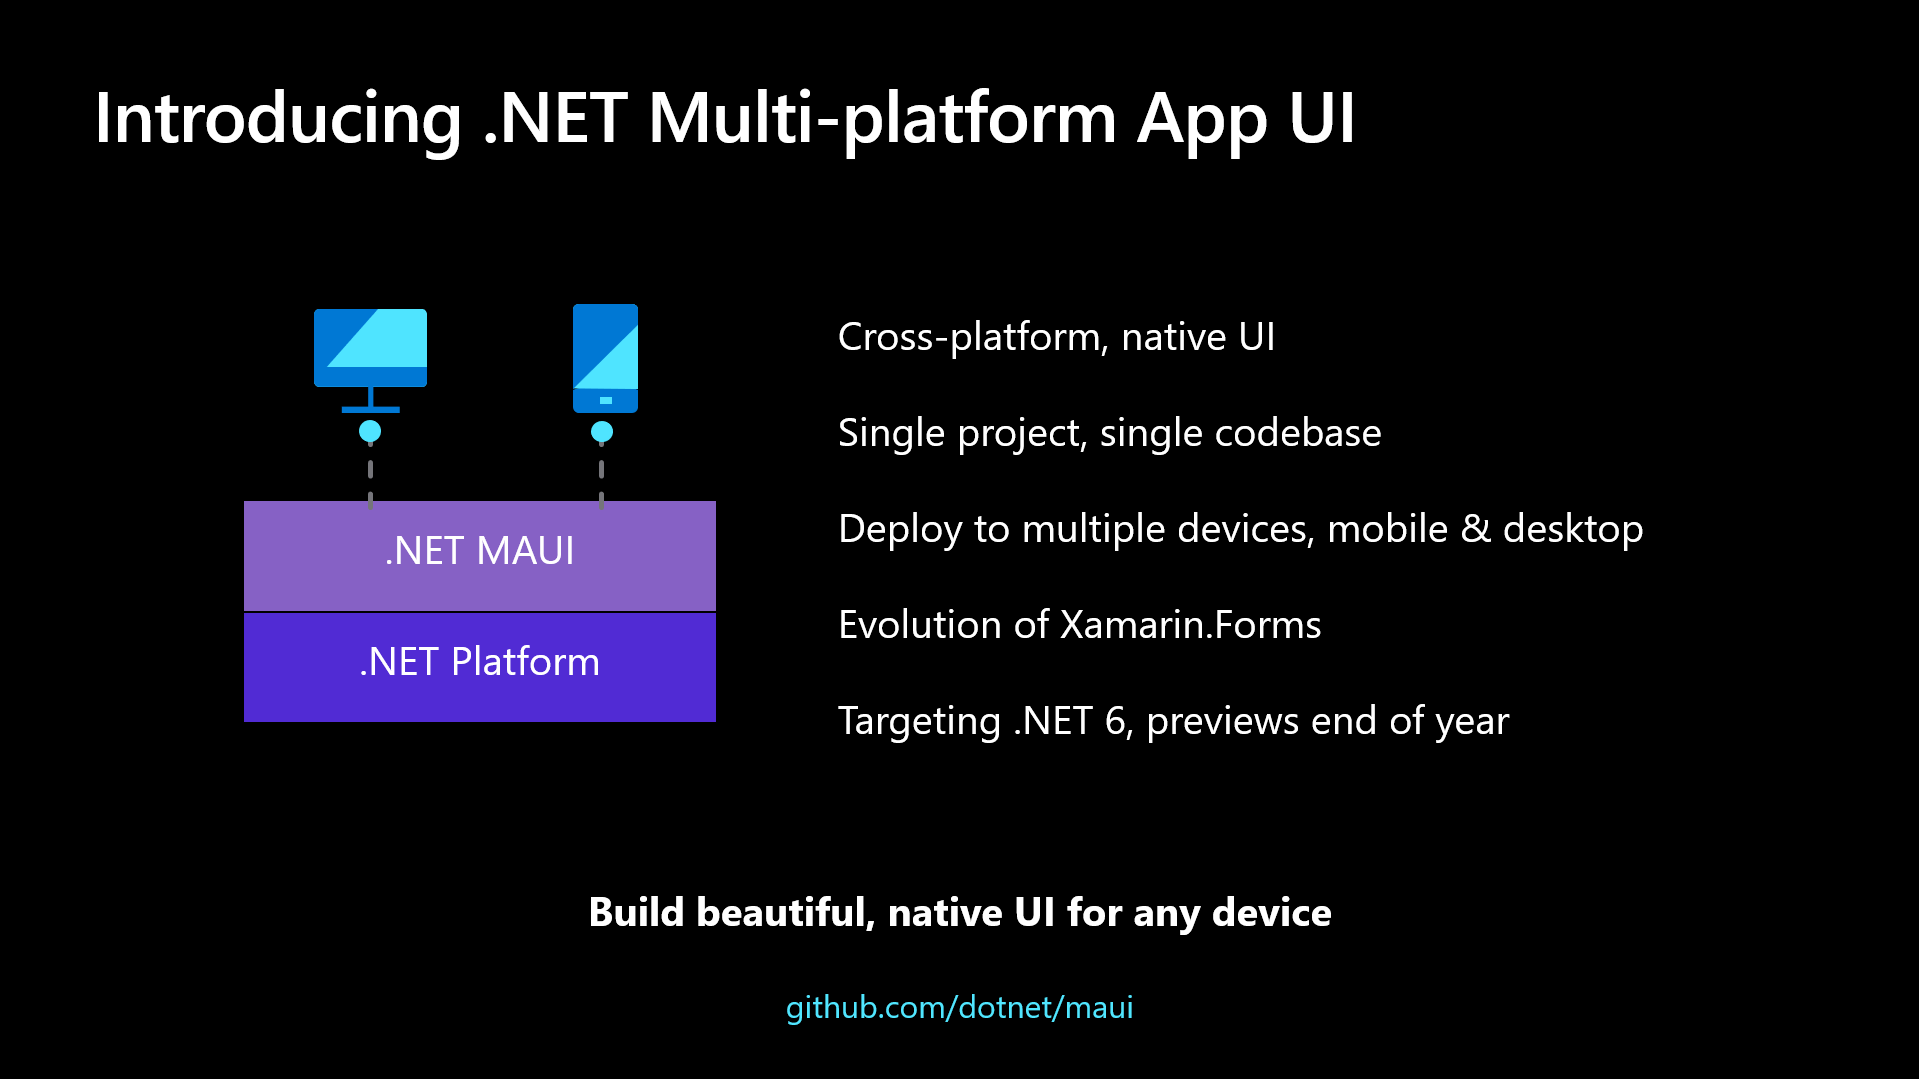 Introducing .NET Multi-platform App UI